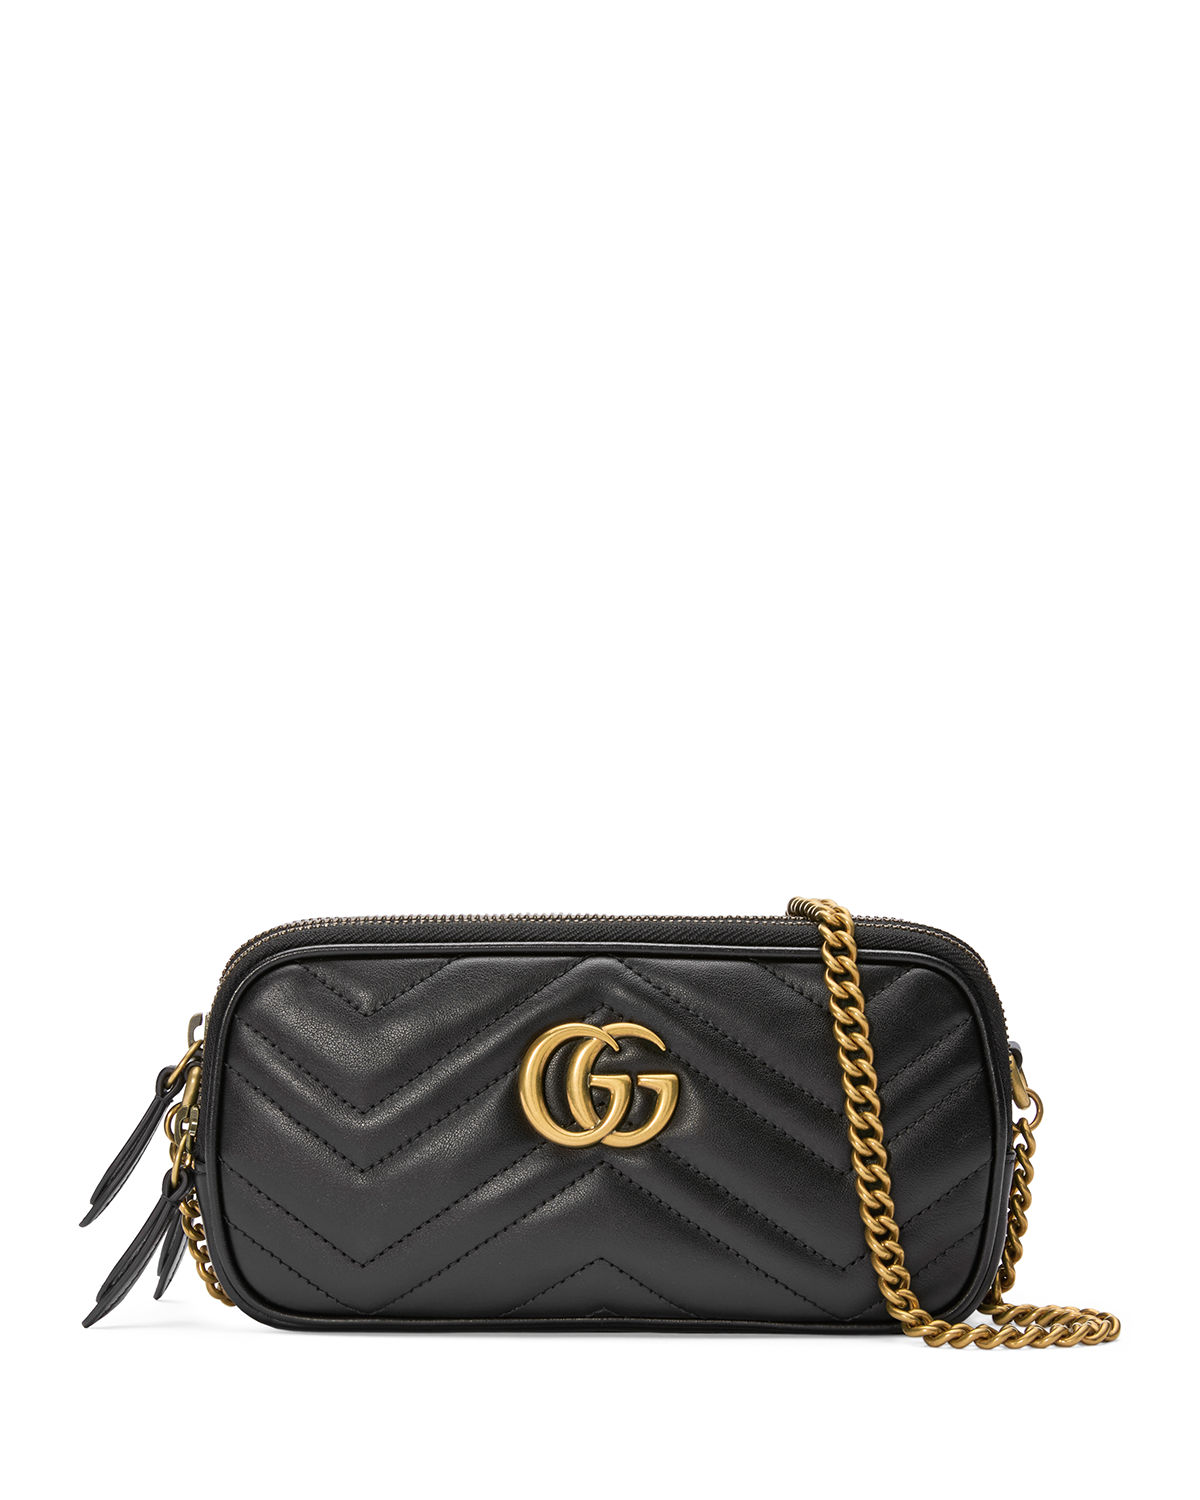 7952da16745c Gucci Gg Marmont Mini Quilted Leather Shoulder Bag In Black Leather ...